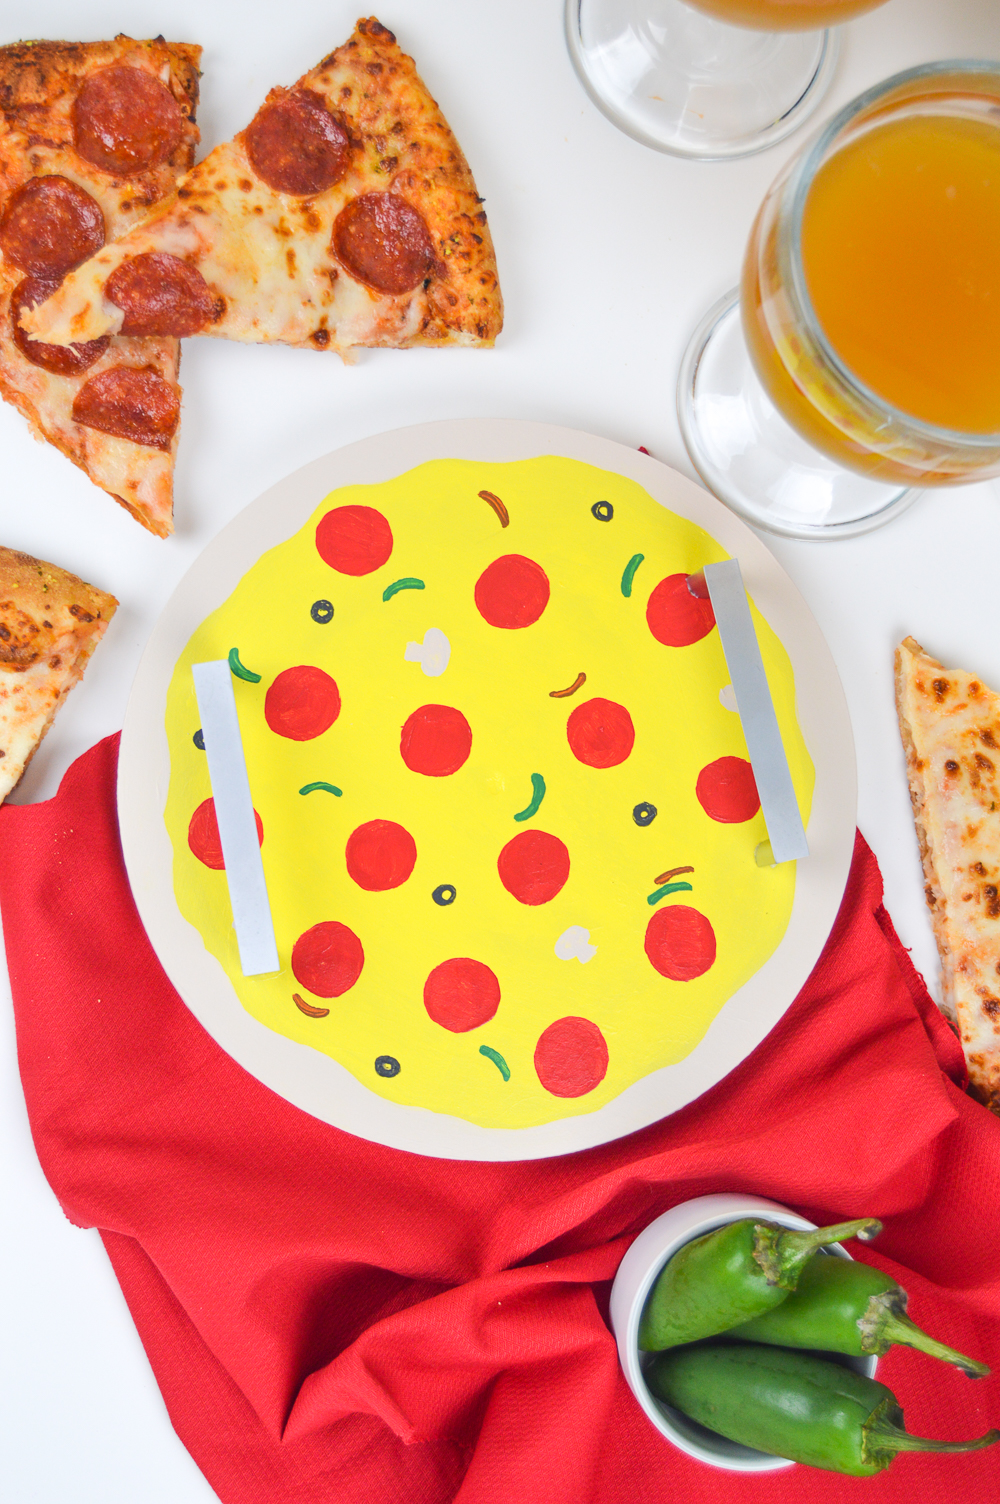 DIY Pizza Tray | Club Crafted